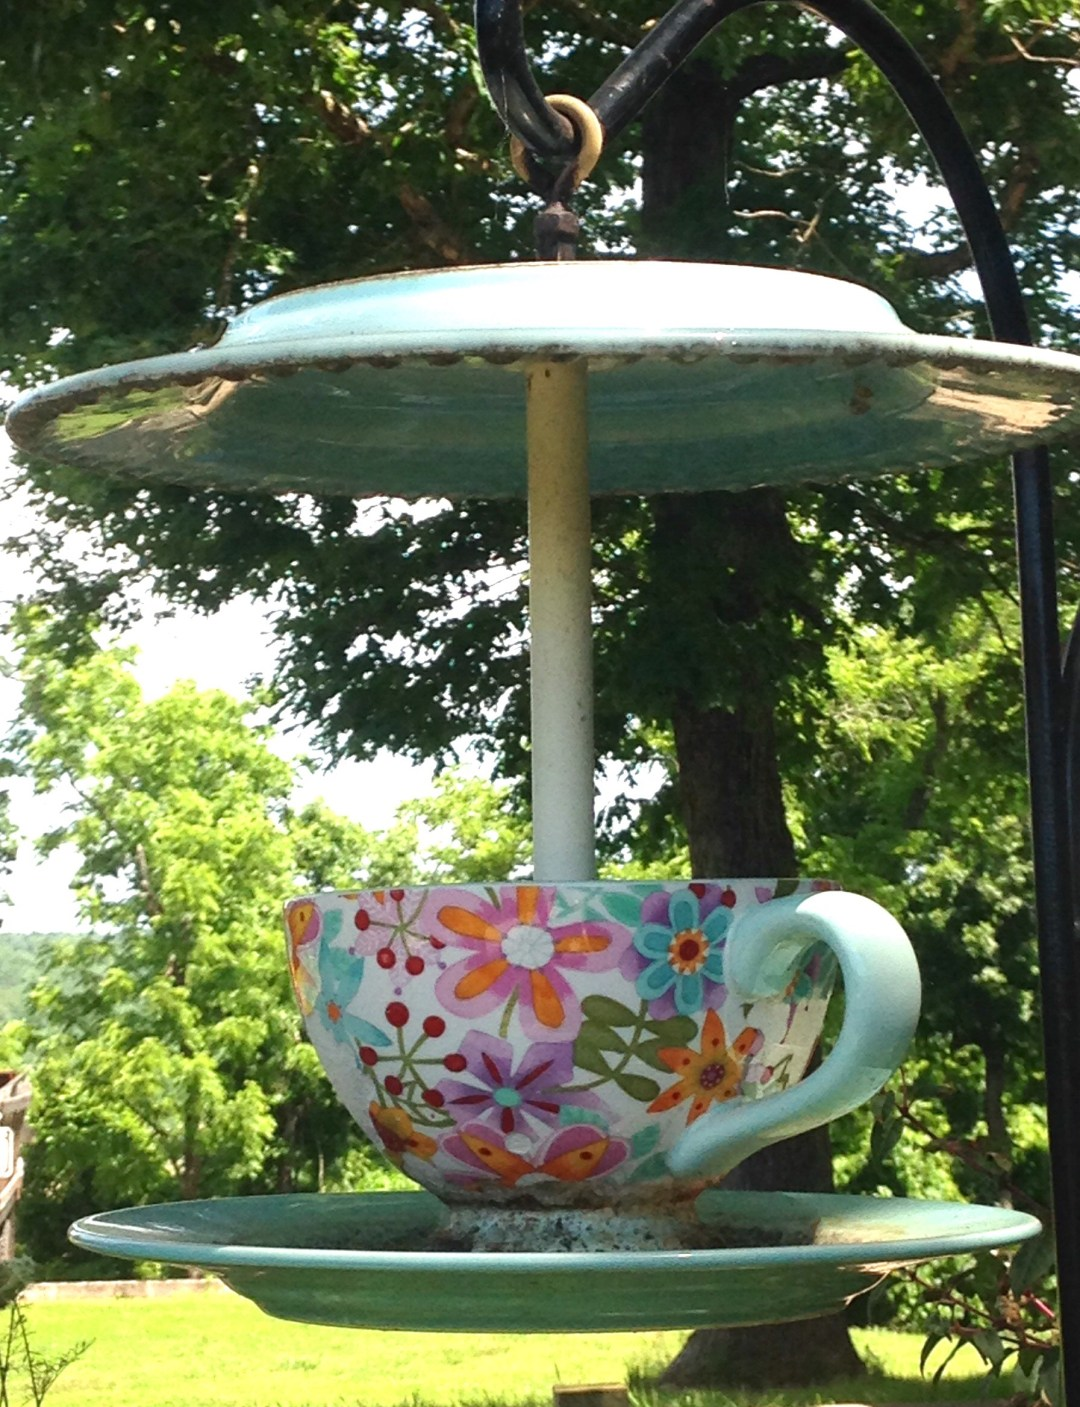 Birdfeeder Made from Cup and Saucer